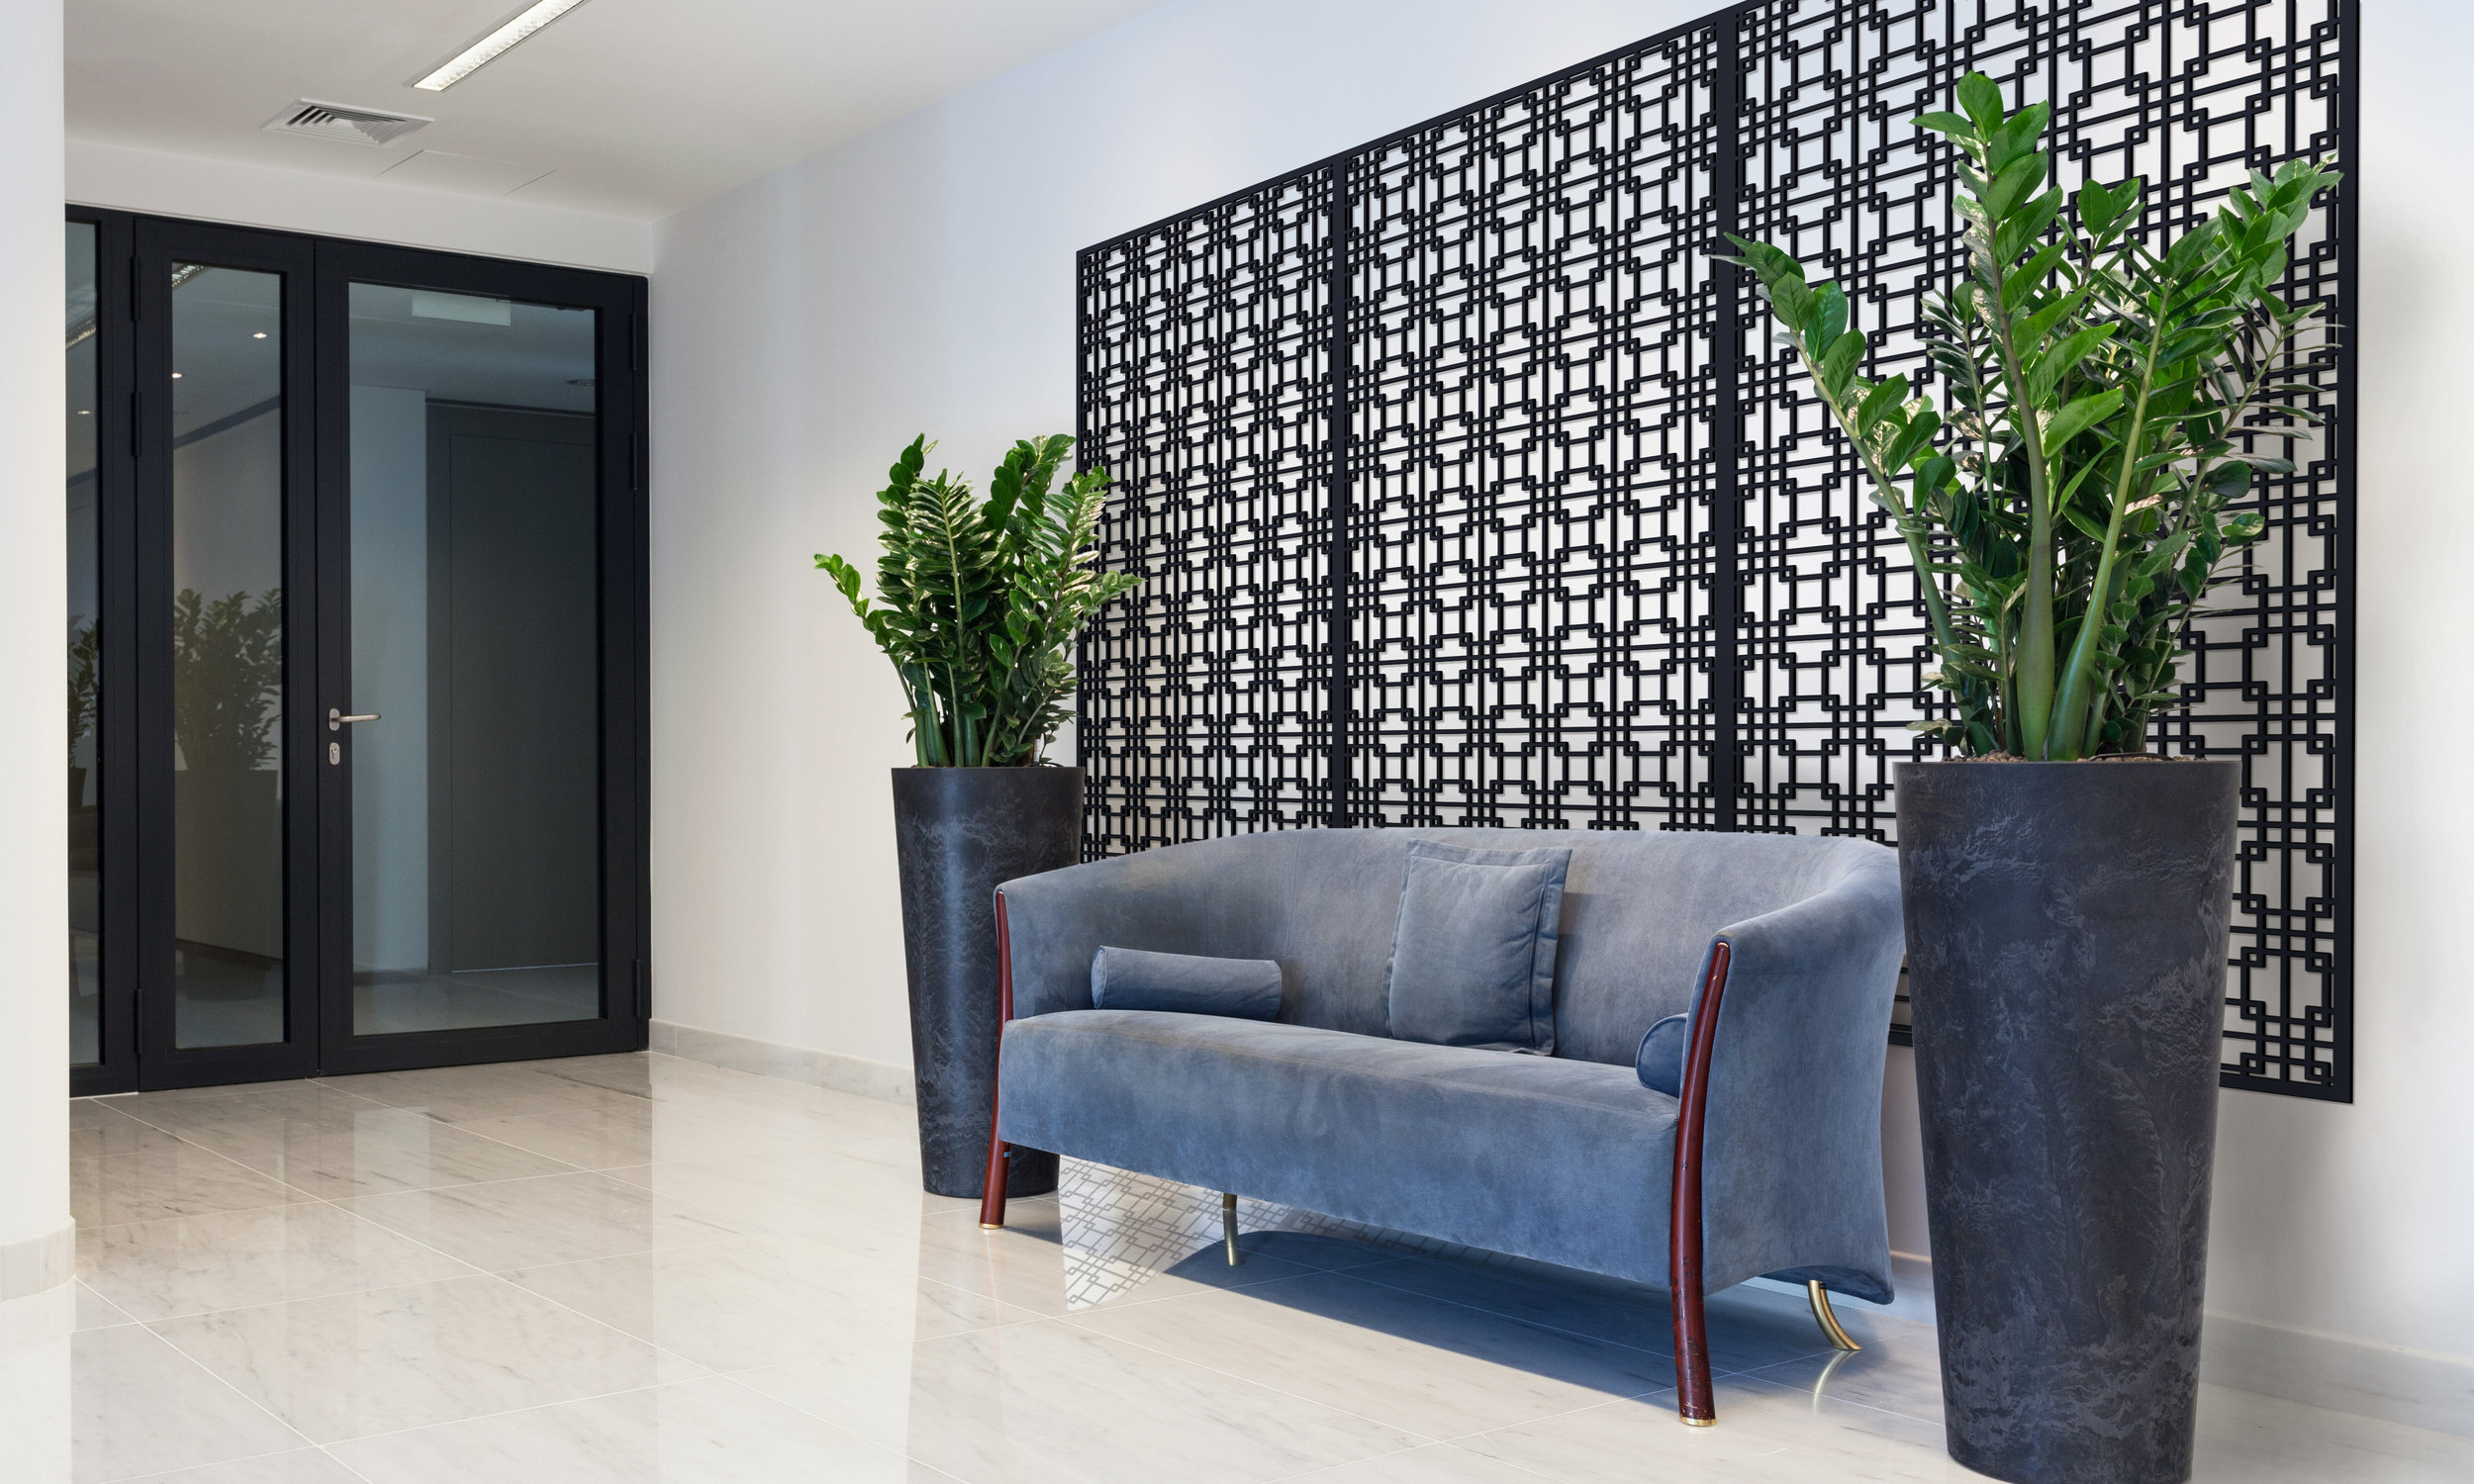 Installation Rendering B   Tokyo Grille decorative office wall panel - painted